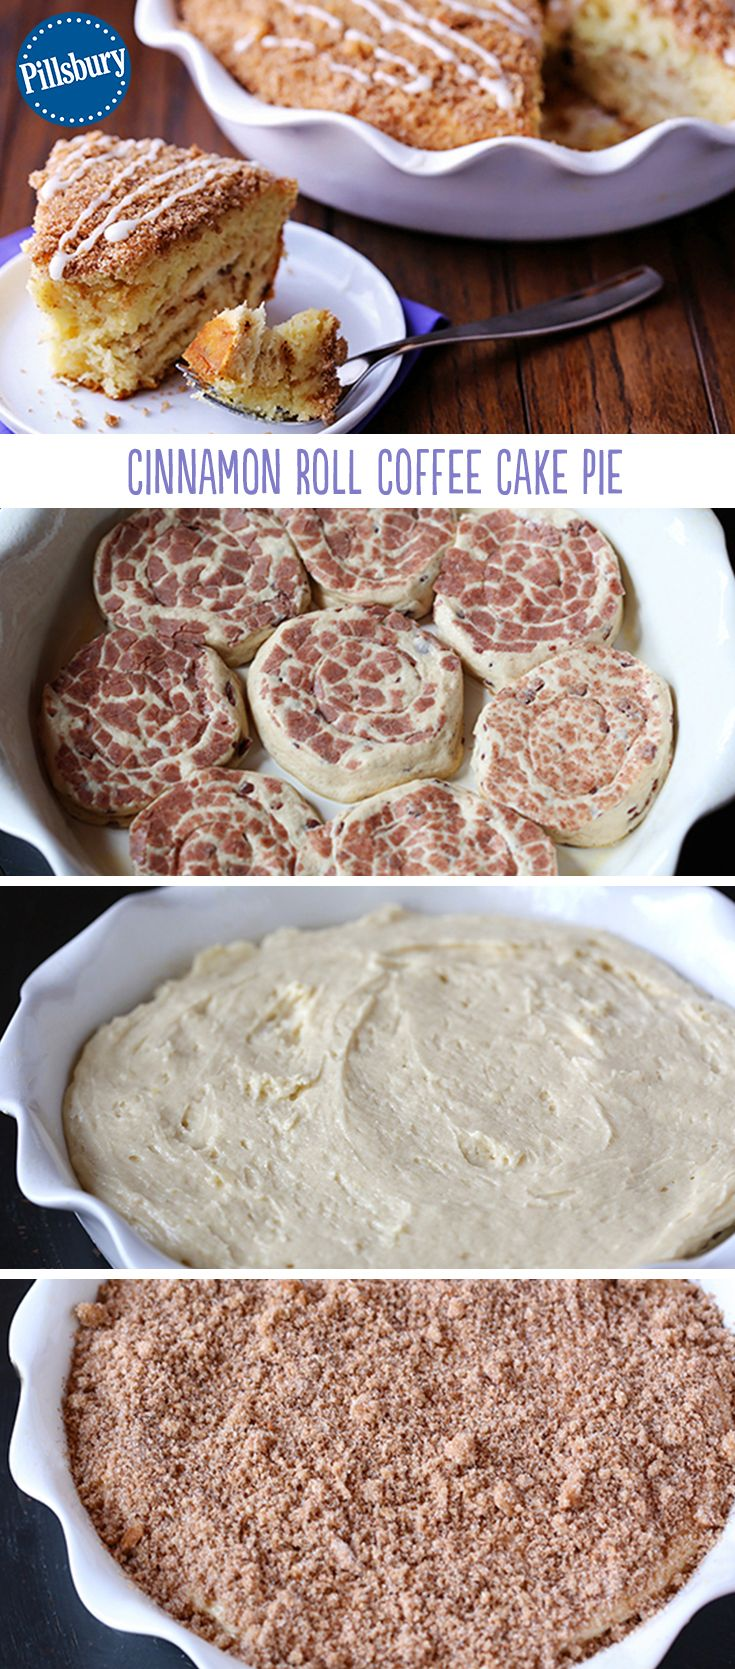 Cinnamon rolls serve as the crust in this delicious coffee cake... what could be better? This easy coffee cake recipe is full of flavor and you can serve it for a crowd. This is a must for your Sunday brunch or weekday breakfast.